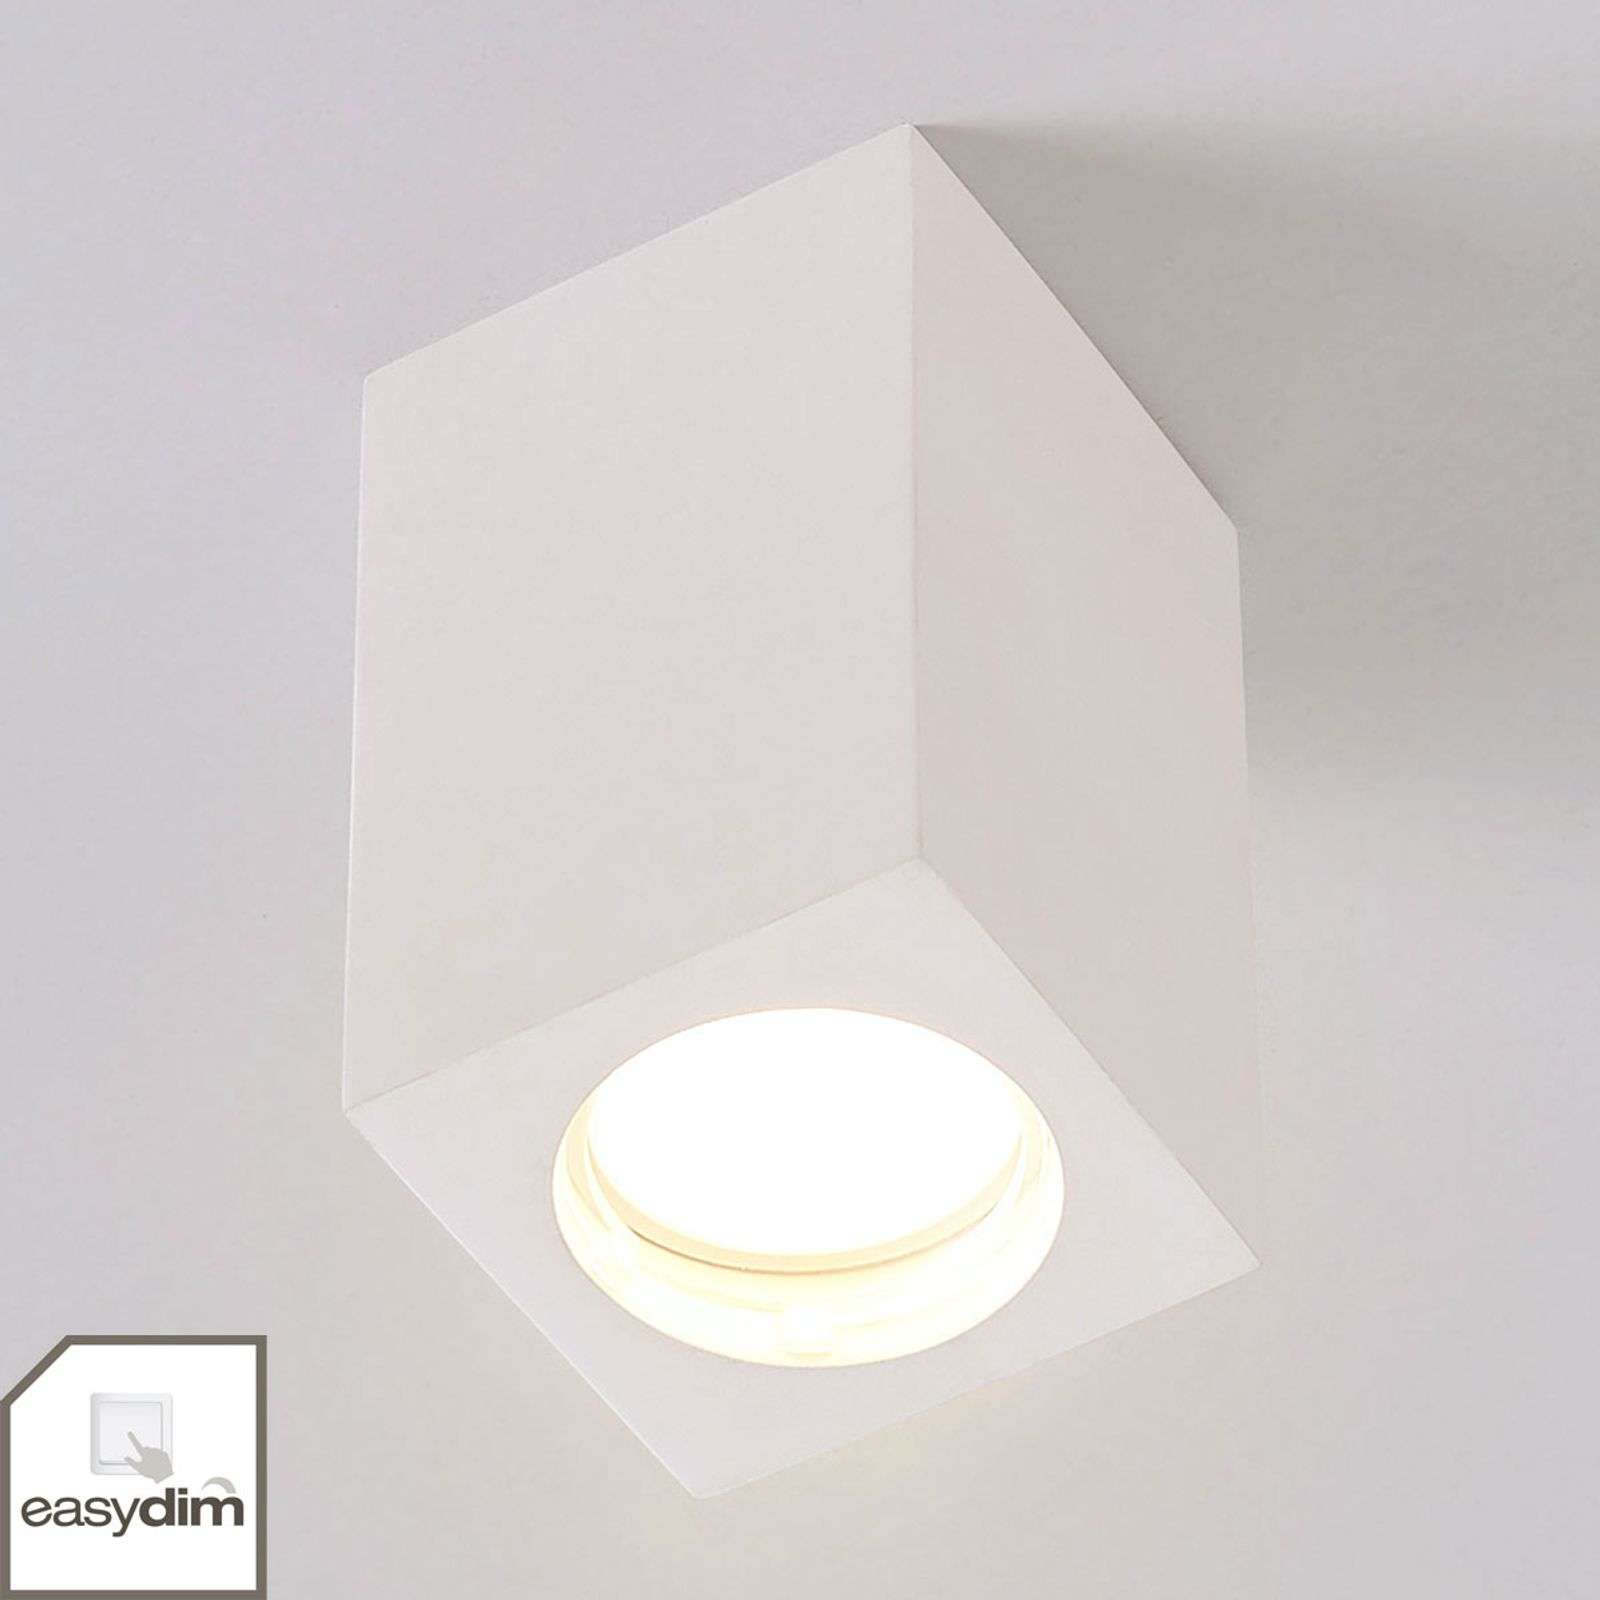 Downlight LED blanc Fritzi, Easydim